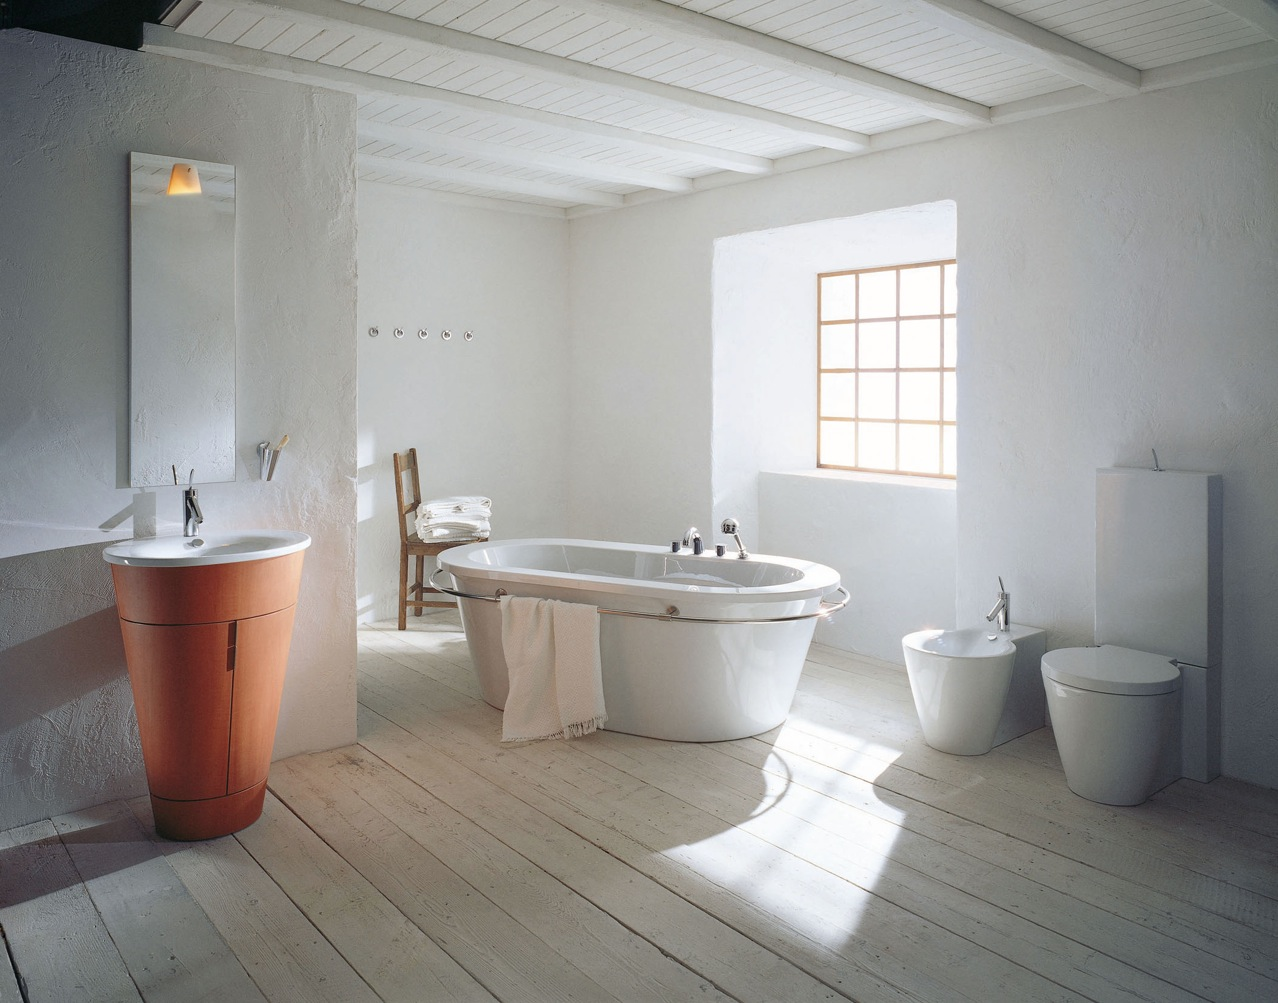 Philipe starck rustic modern bathroom decor interior - Contemporary modern bathroom accessories ...